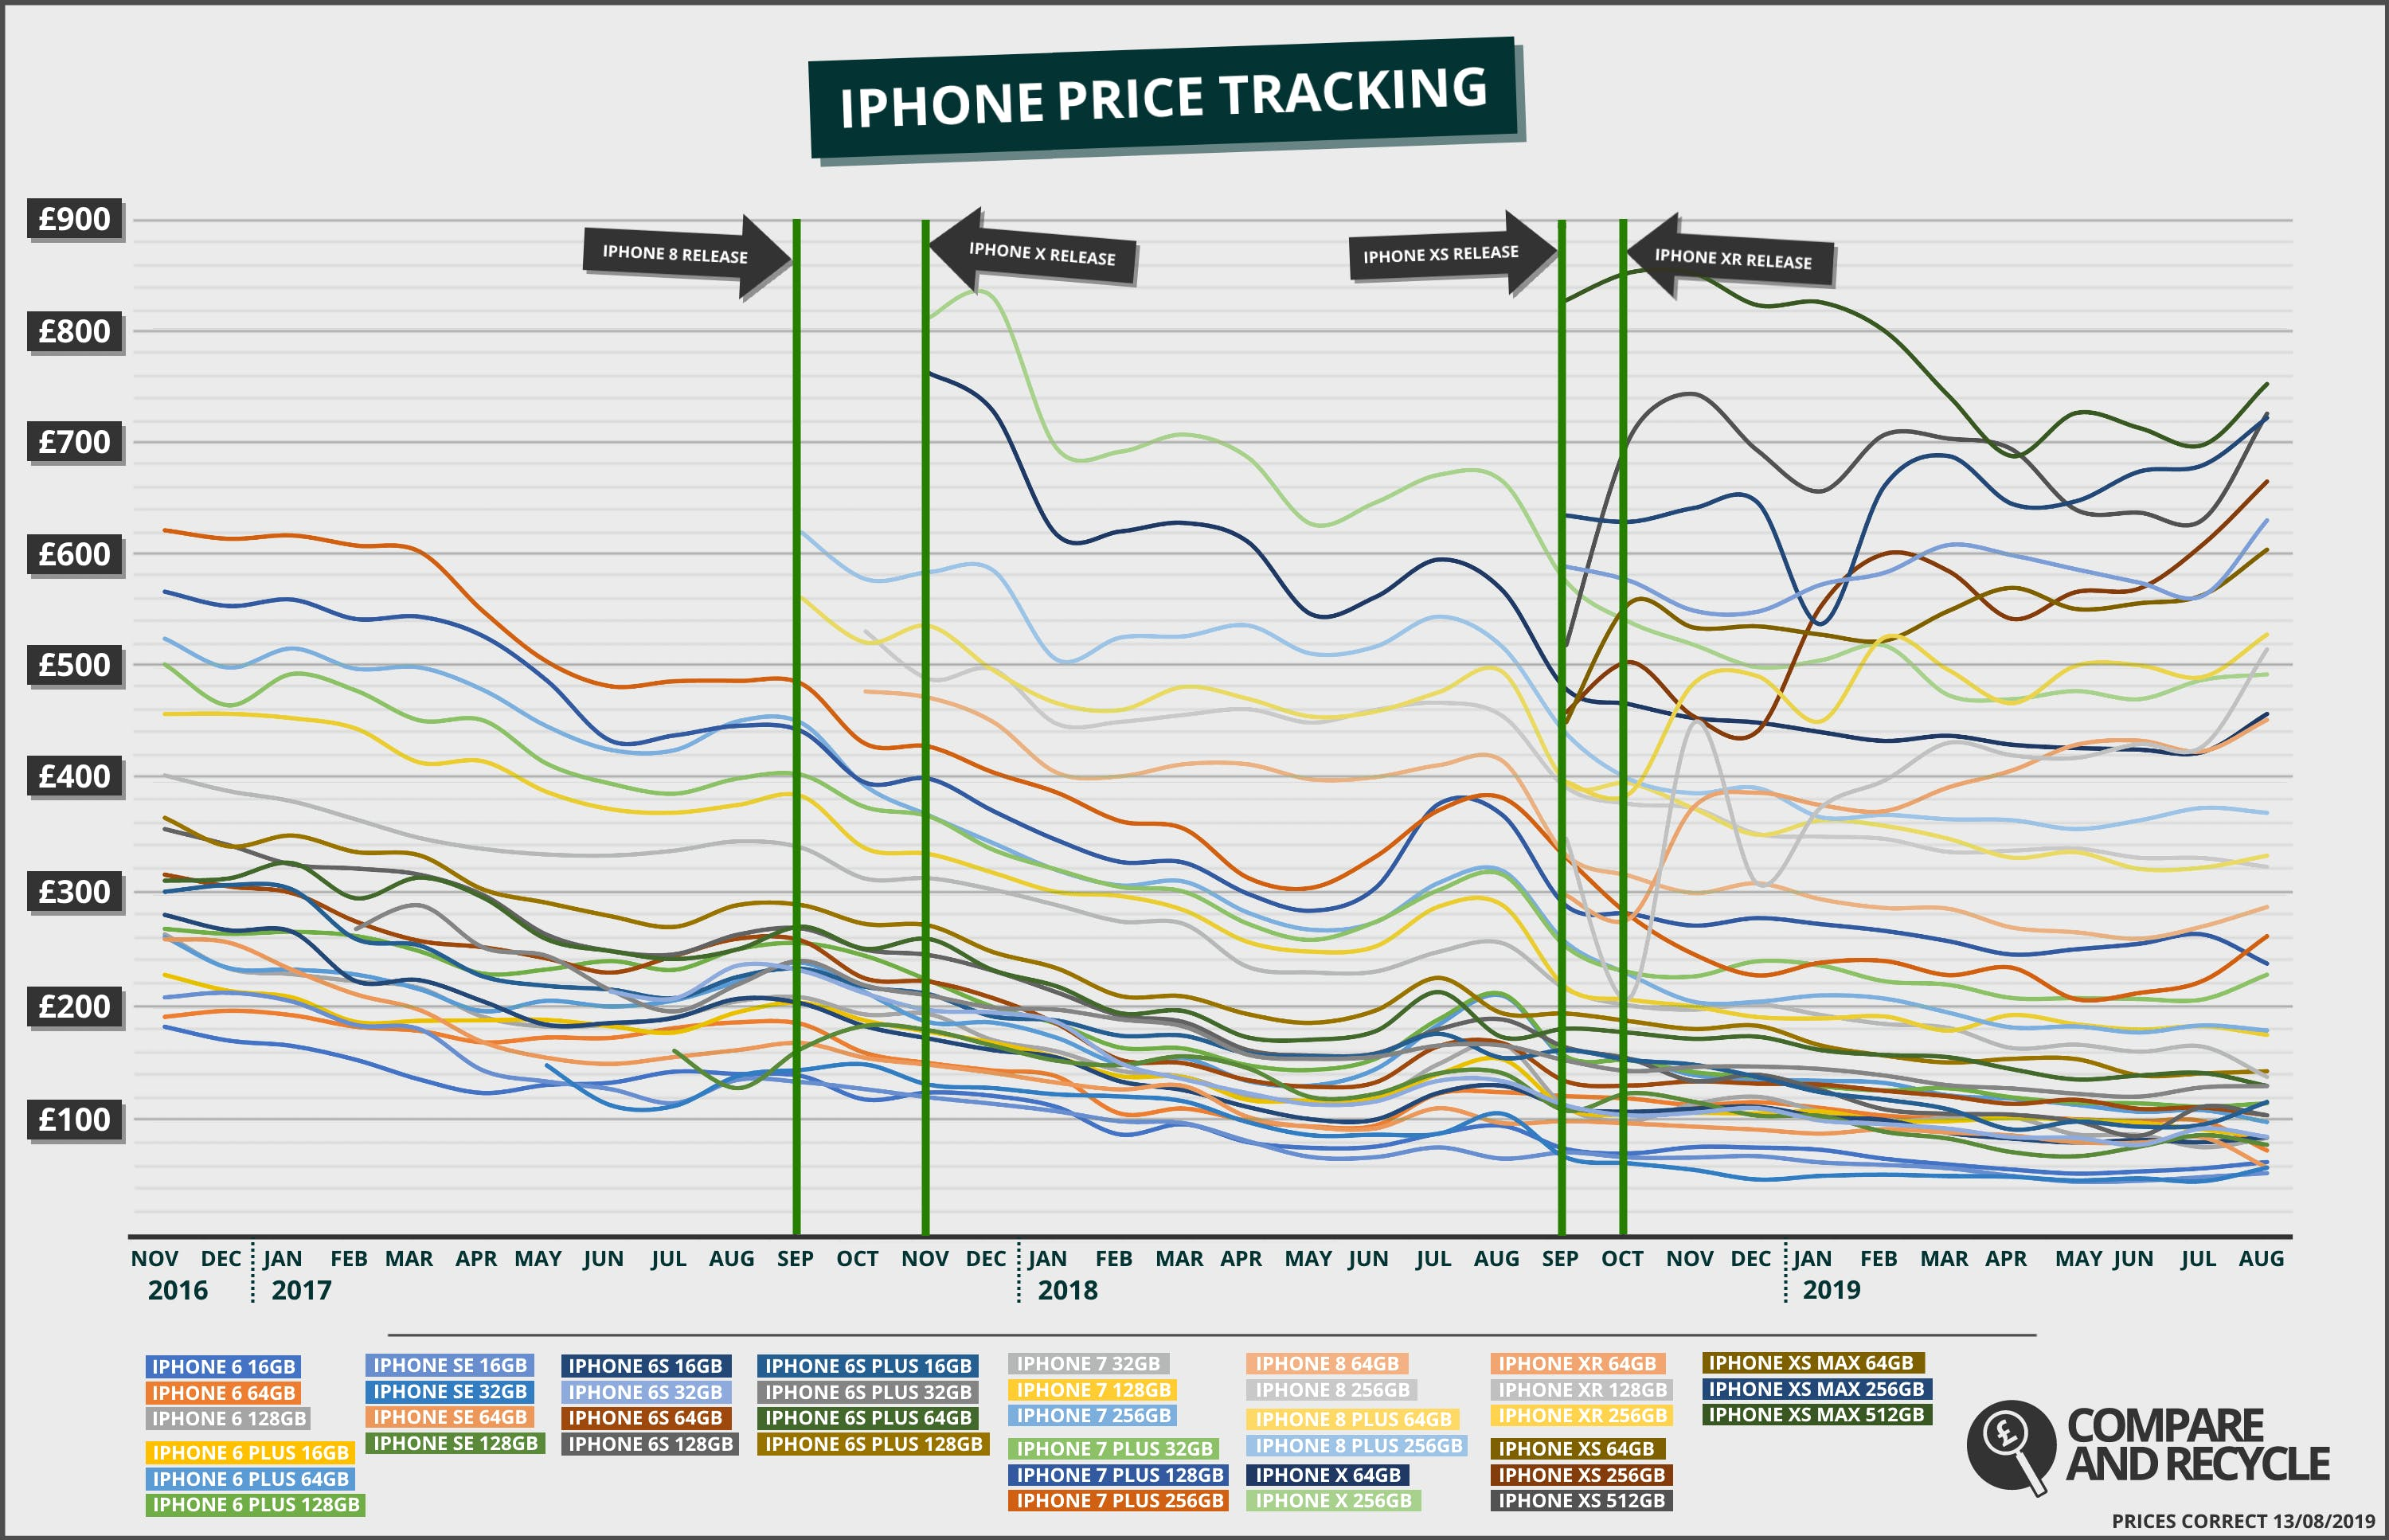 Over the past few years, there have been clear increases in resale value in the run up to the new iPhone launch in September. This year is no different.